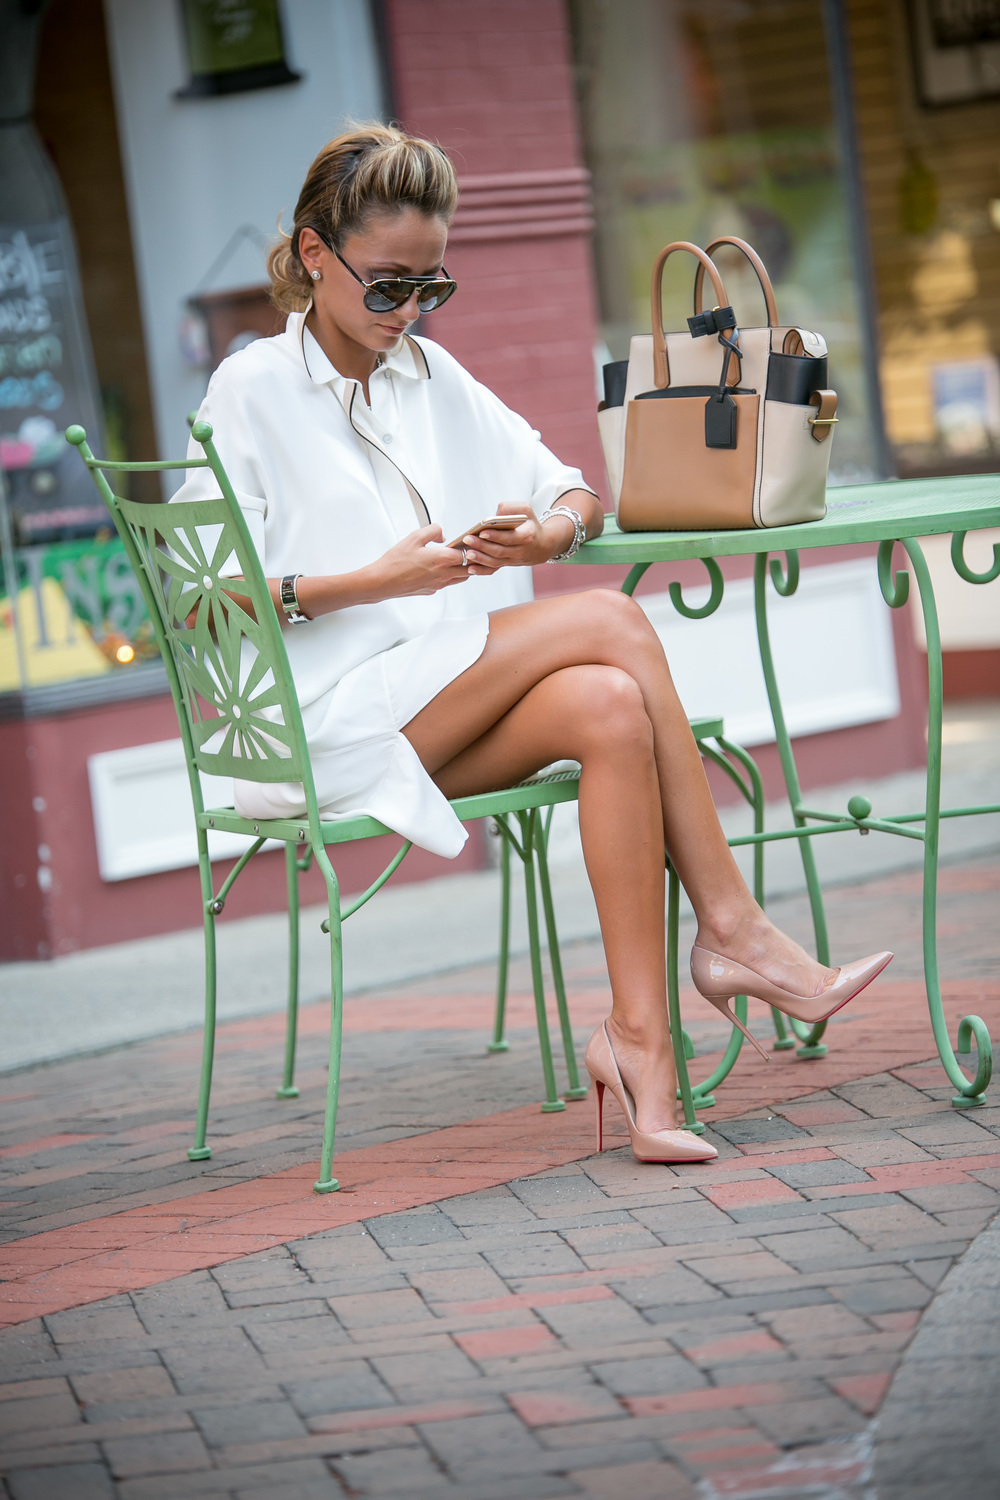 Dress:Rag & Bone|Bag:Reed Krakoff|Pumps:Christian Louboutin|Sunnies:Marc Jacobs Dino Petrocelli Photography